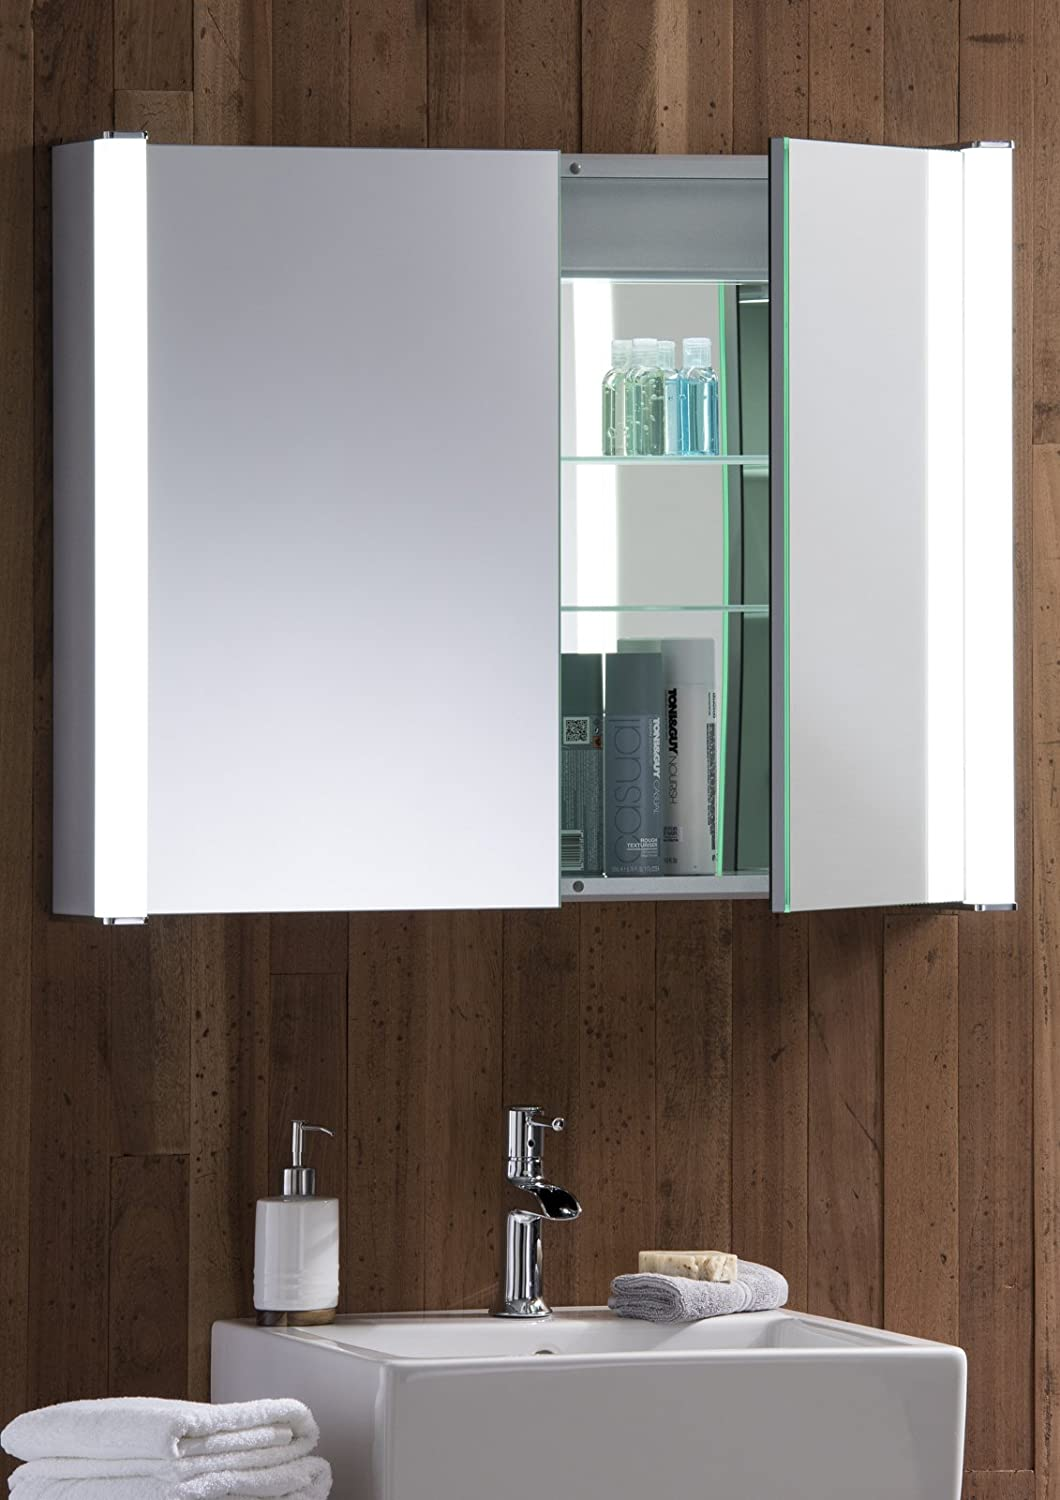 LED Illuminated Bathroom Mirror Cabinet With Demister Heat Pad, Shaver And  Sensor Switch With Lights Fully Certified To British Standards 65cm(H) X  80cm(W) ...